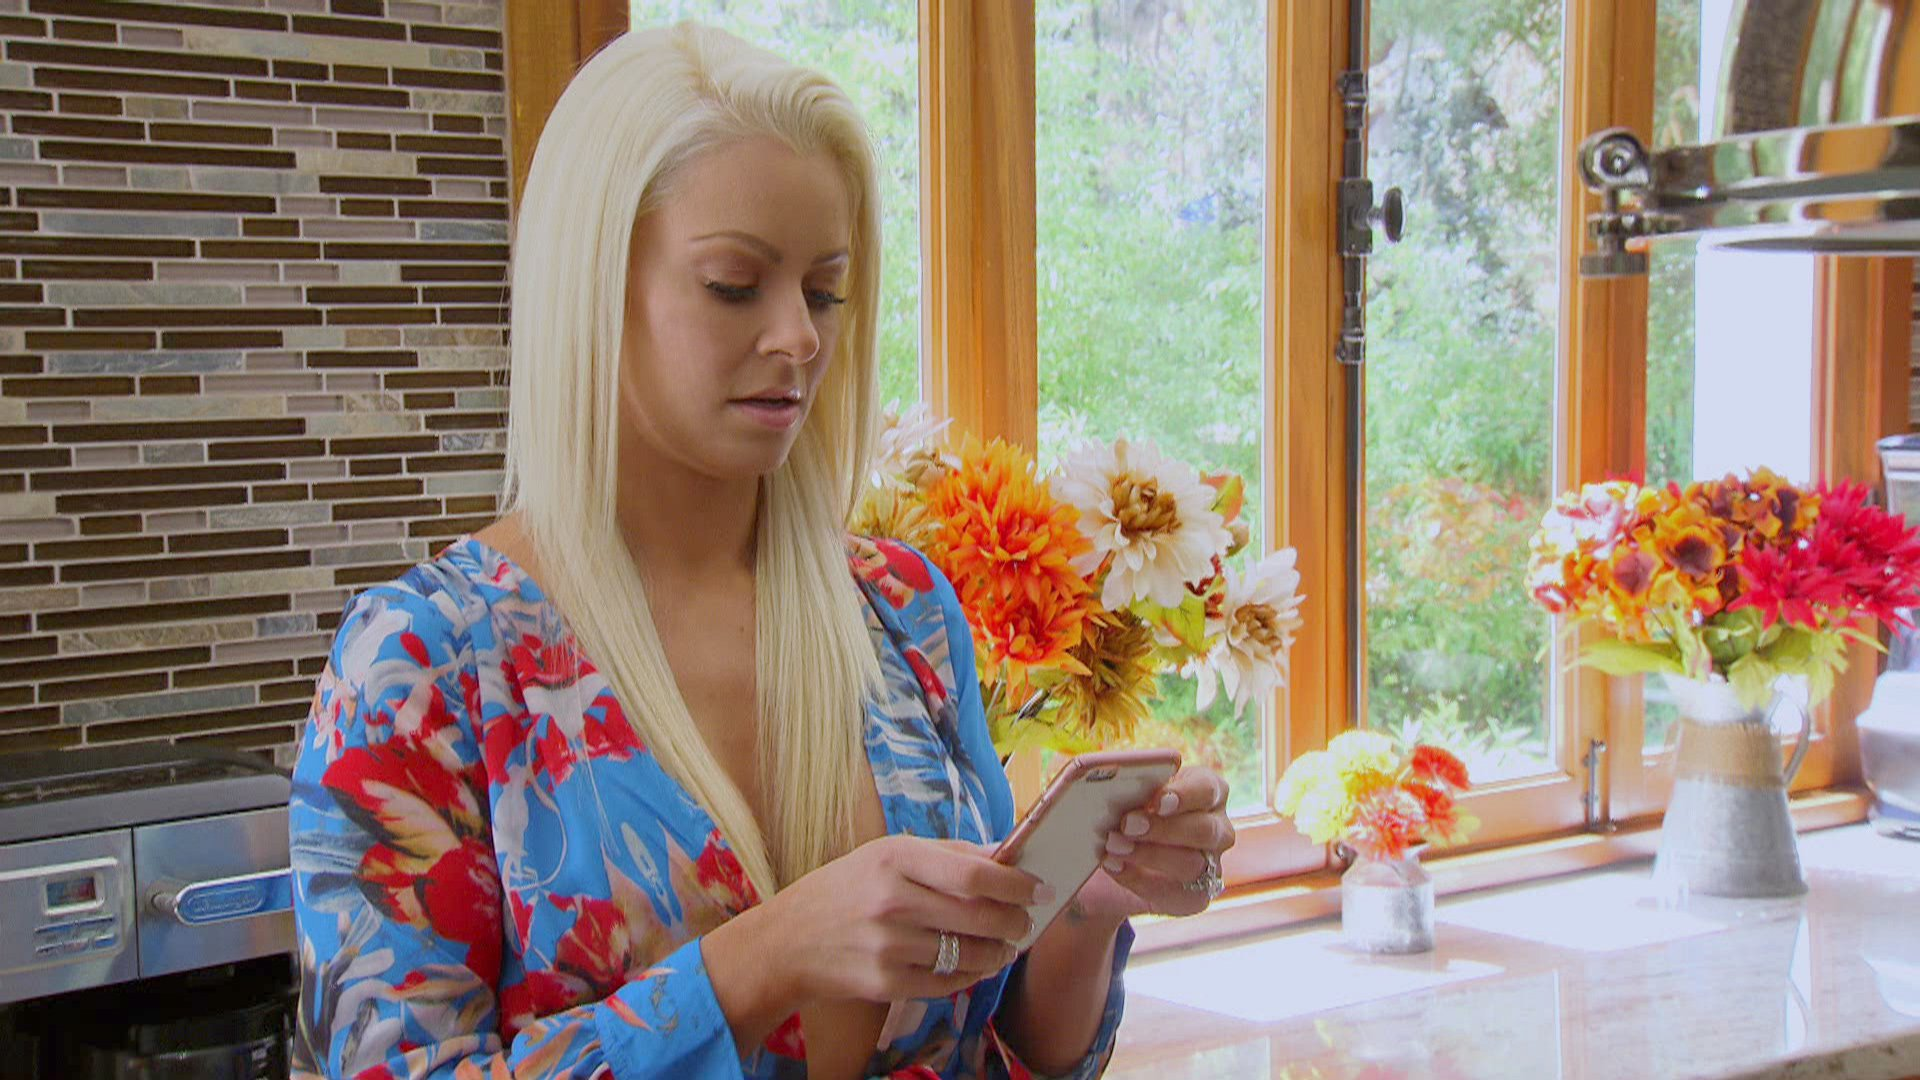 Maryse is mortified to learn she accidentally sent a private text to several people because she couldn't see who she was typing.